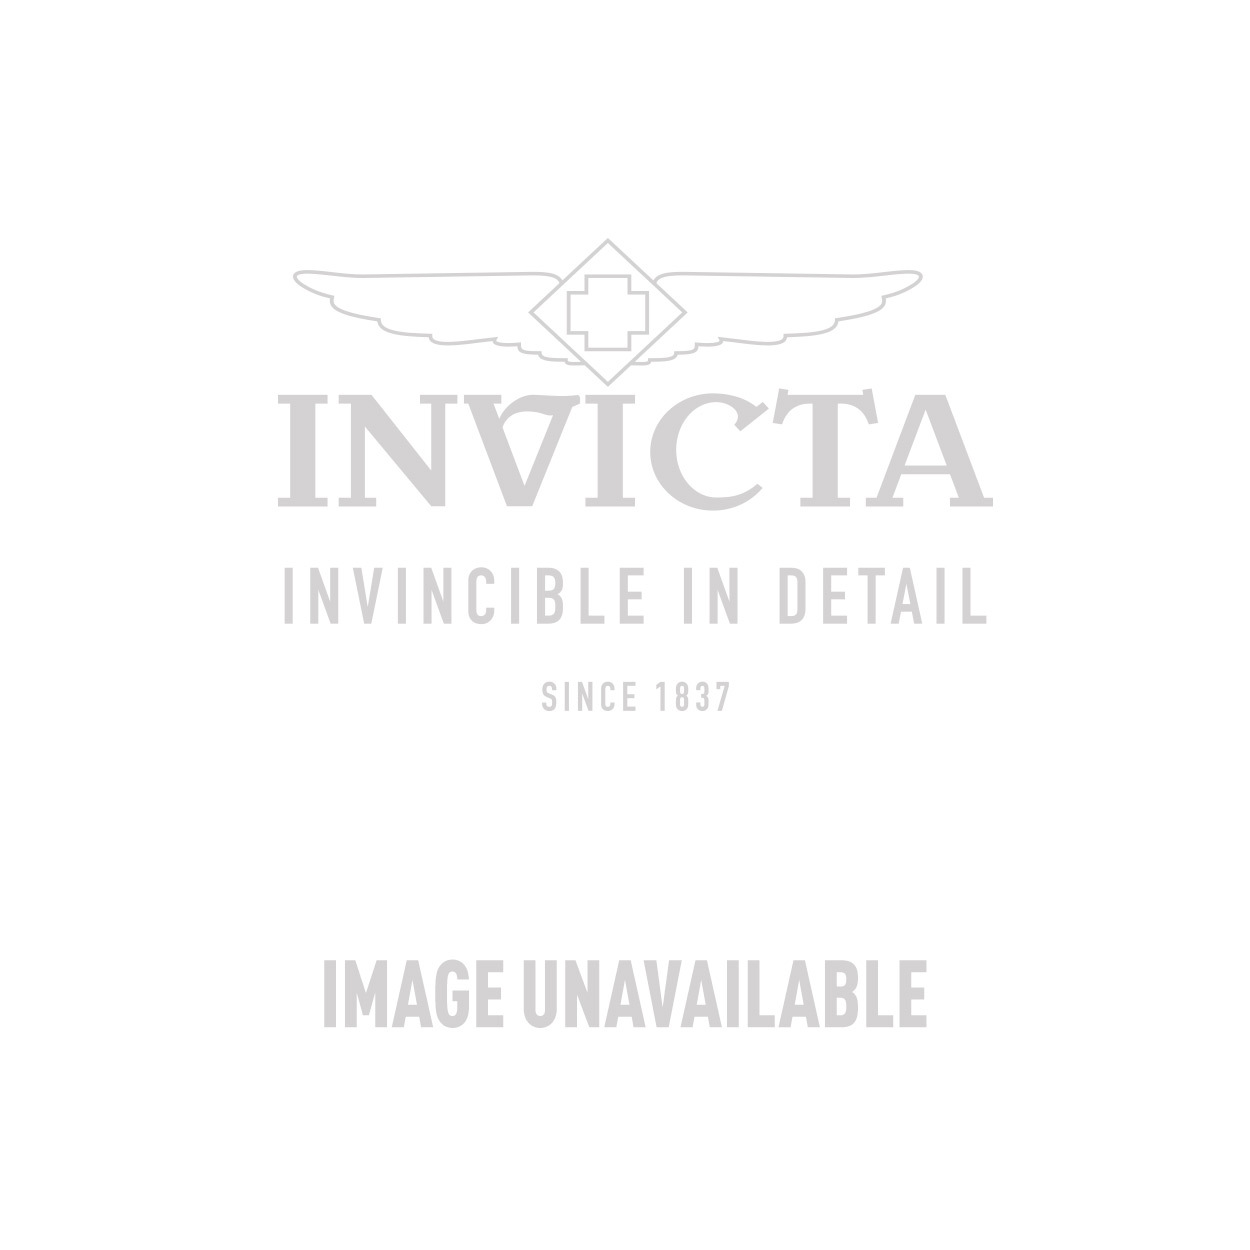 Invicta S. Coifman Swiss Movement Quartz Watch - Rose Gold case with Brown tone Leather band - Model SC0214